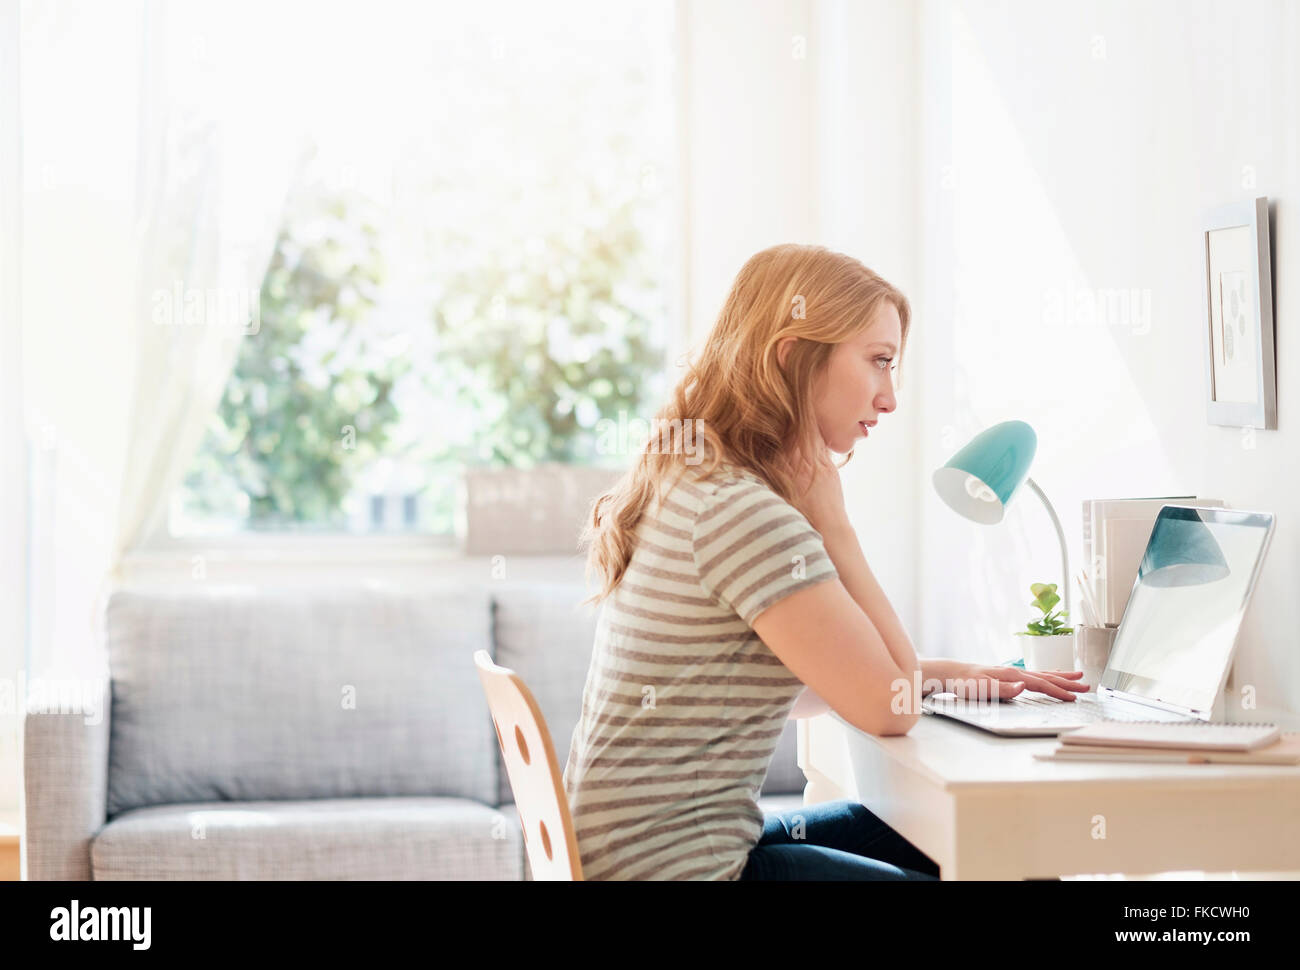 Side-view of young woman working on laptop at home - Stock Image